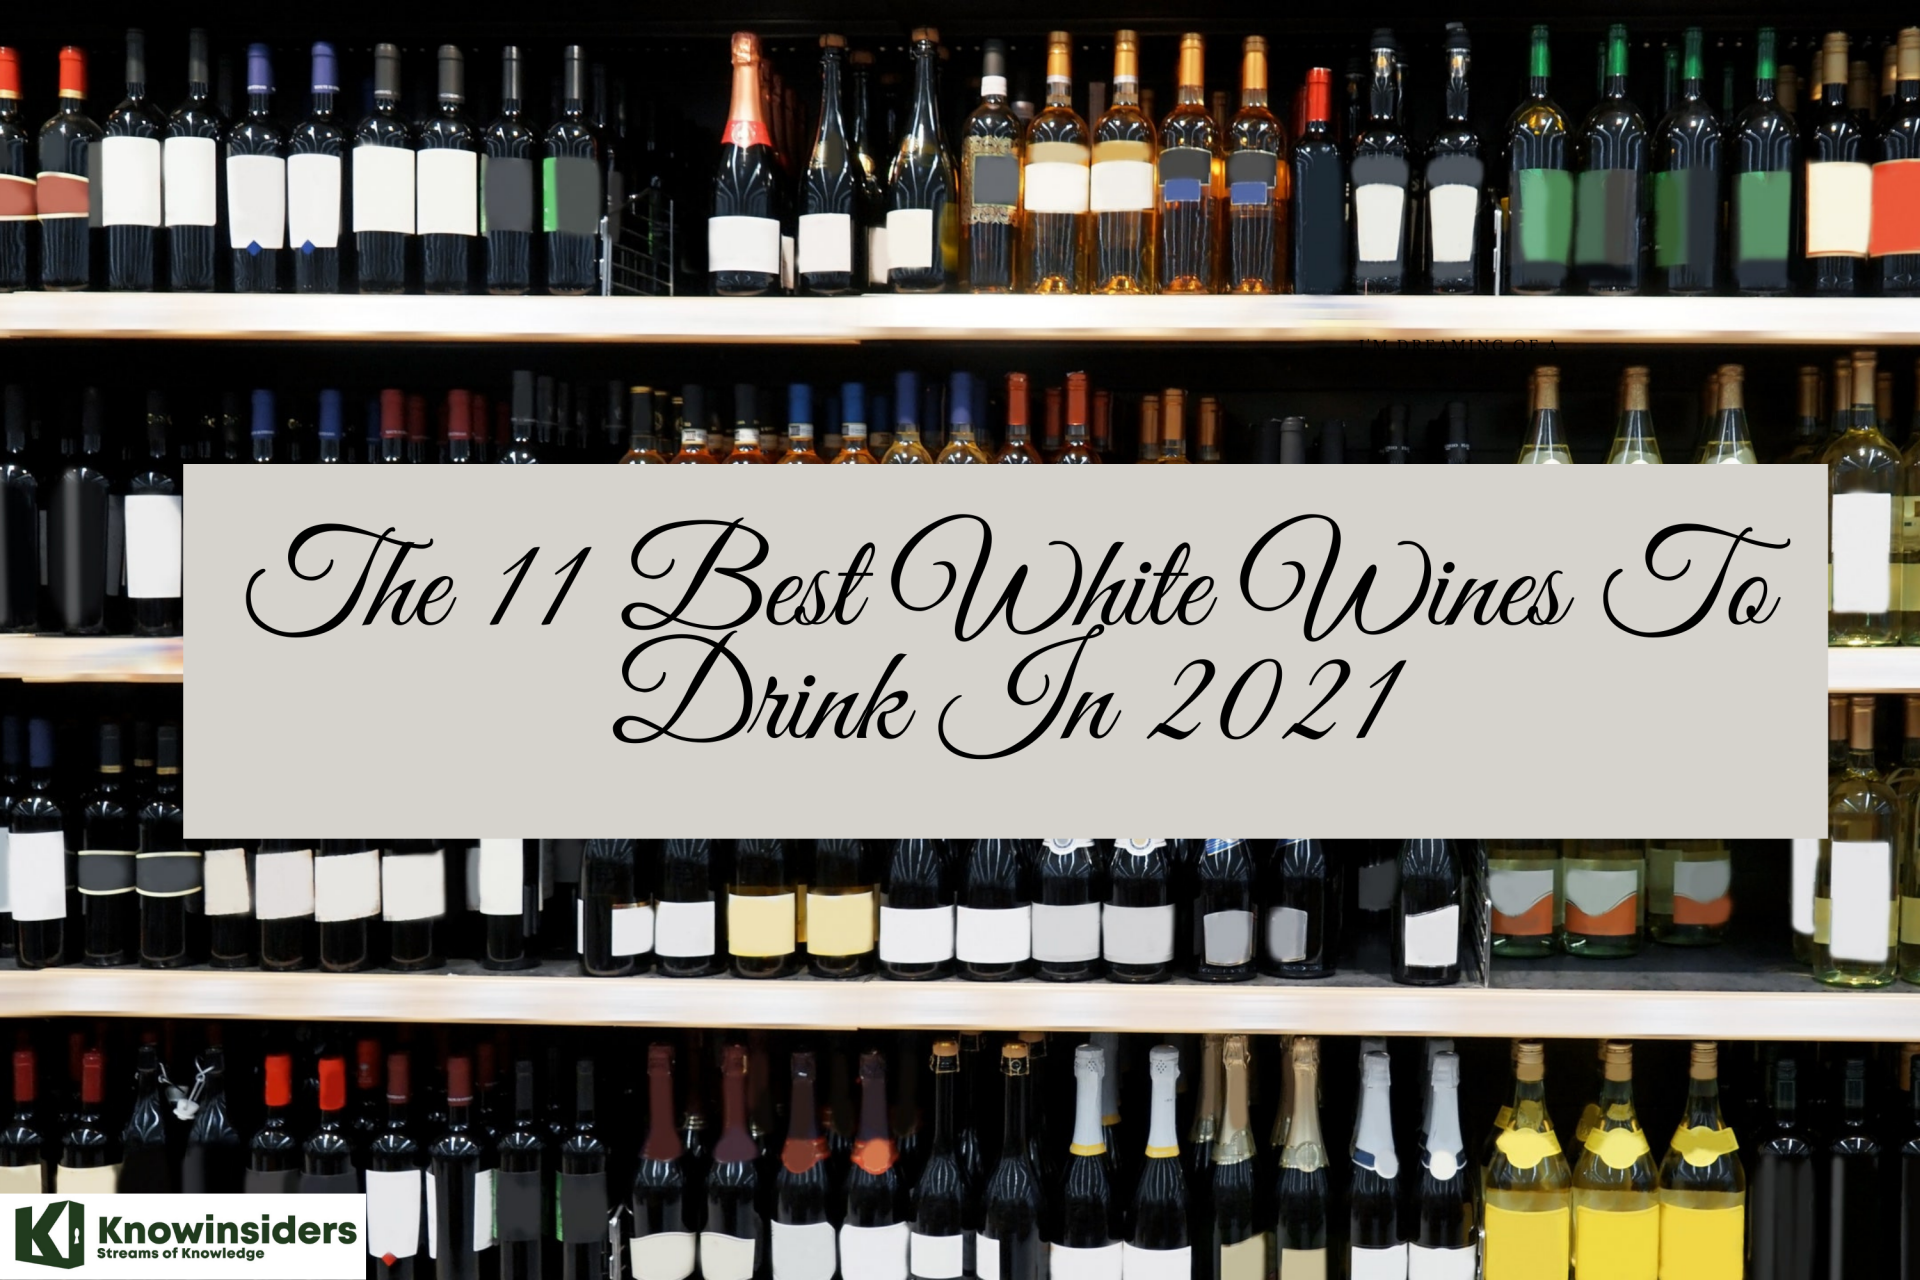 The 11 Best White Wines To Drink In 2021/2022